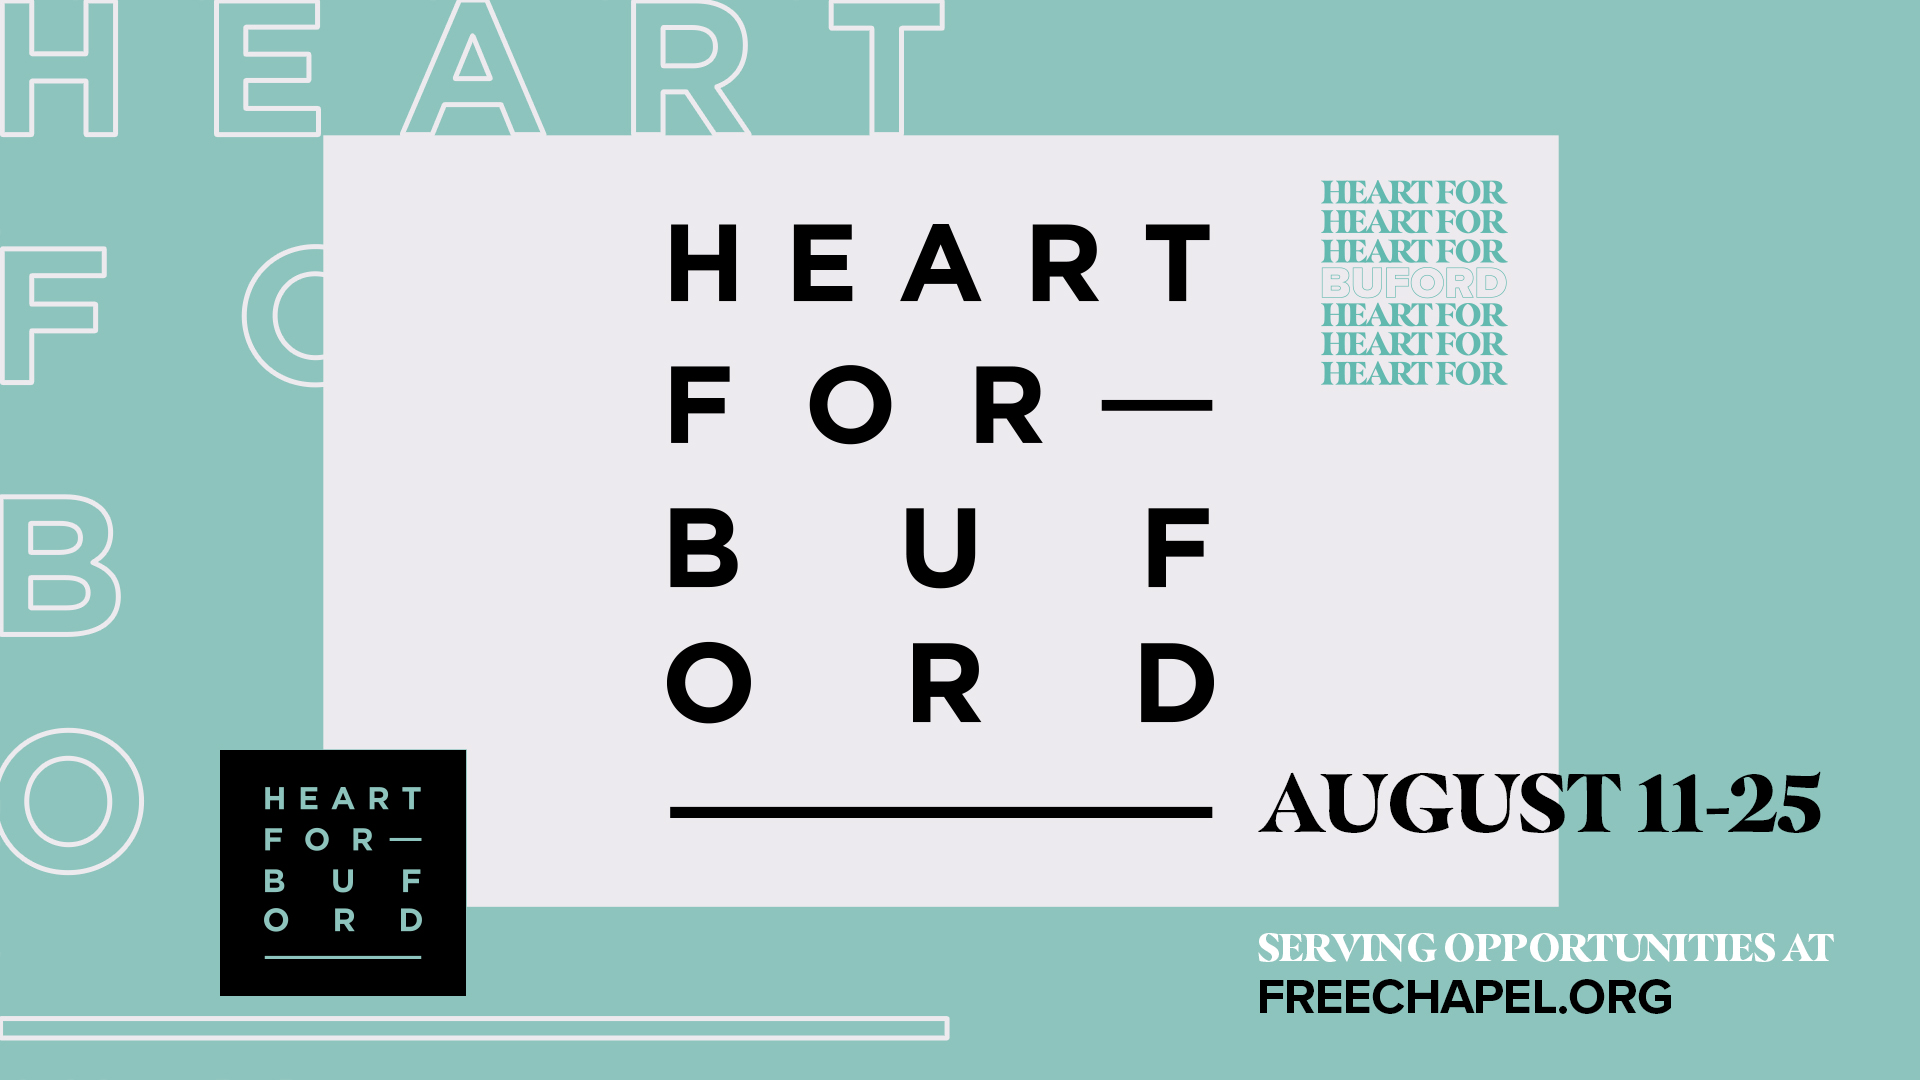 Heart For Buford at the Buford campus